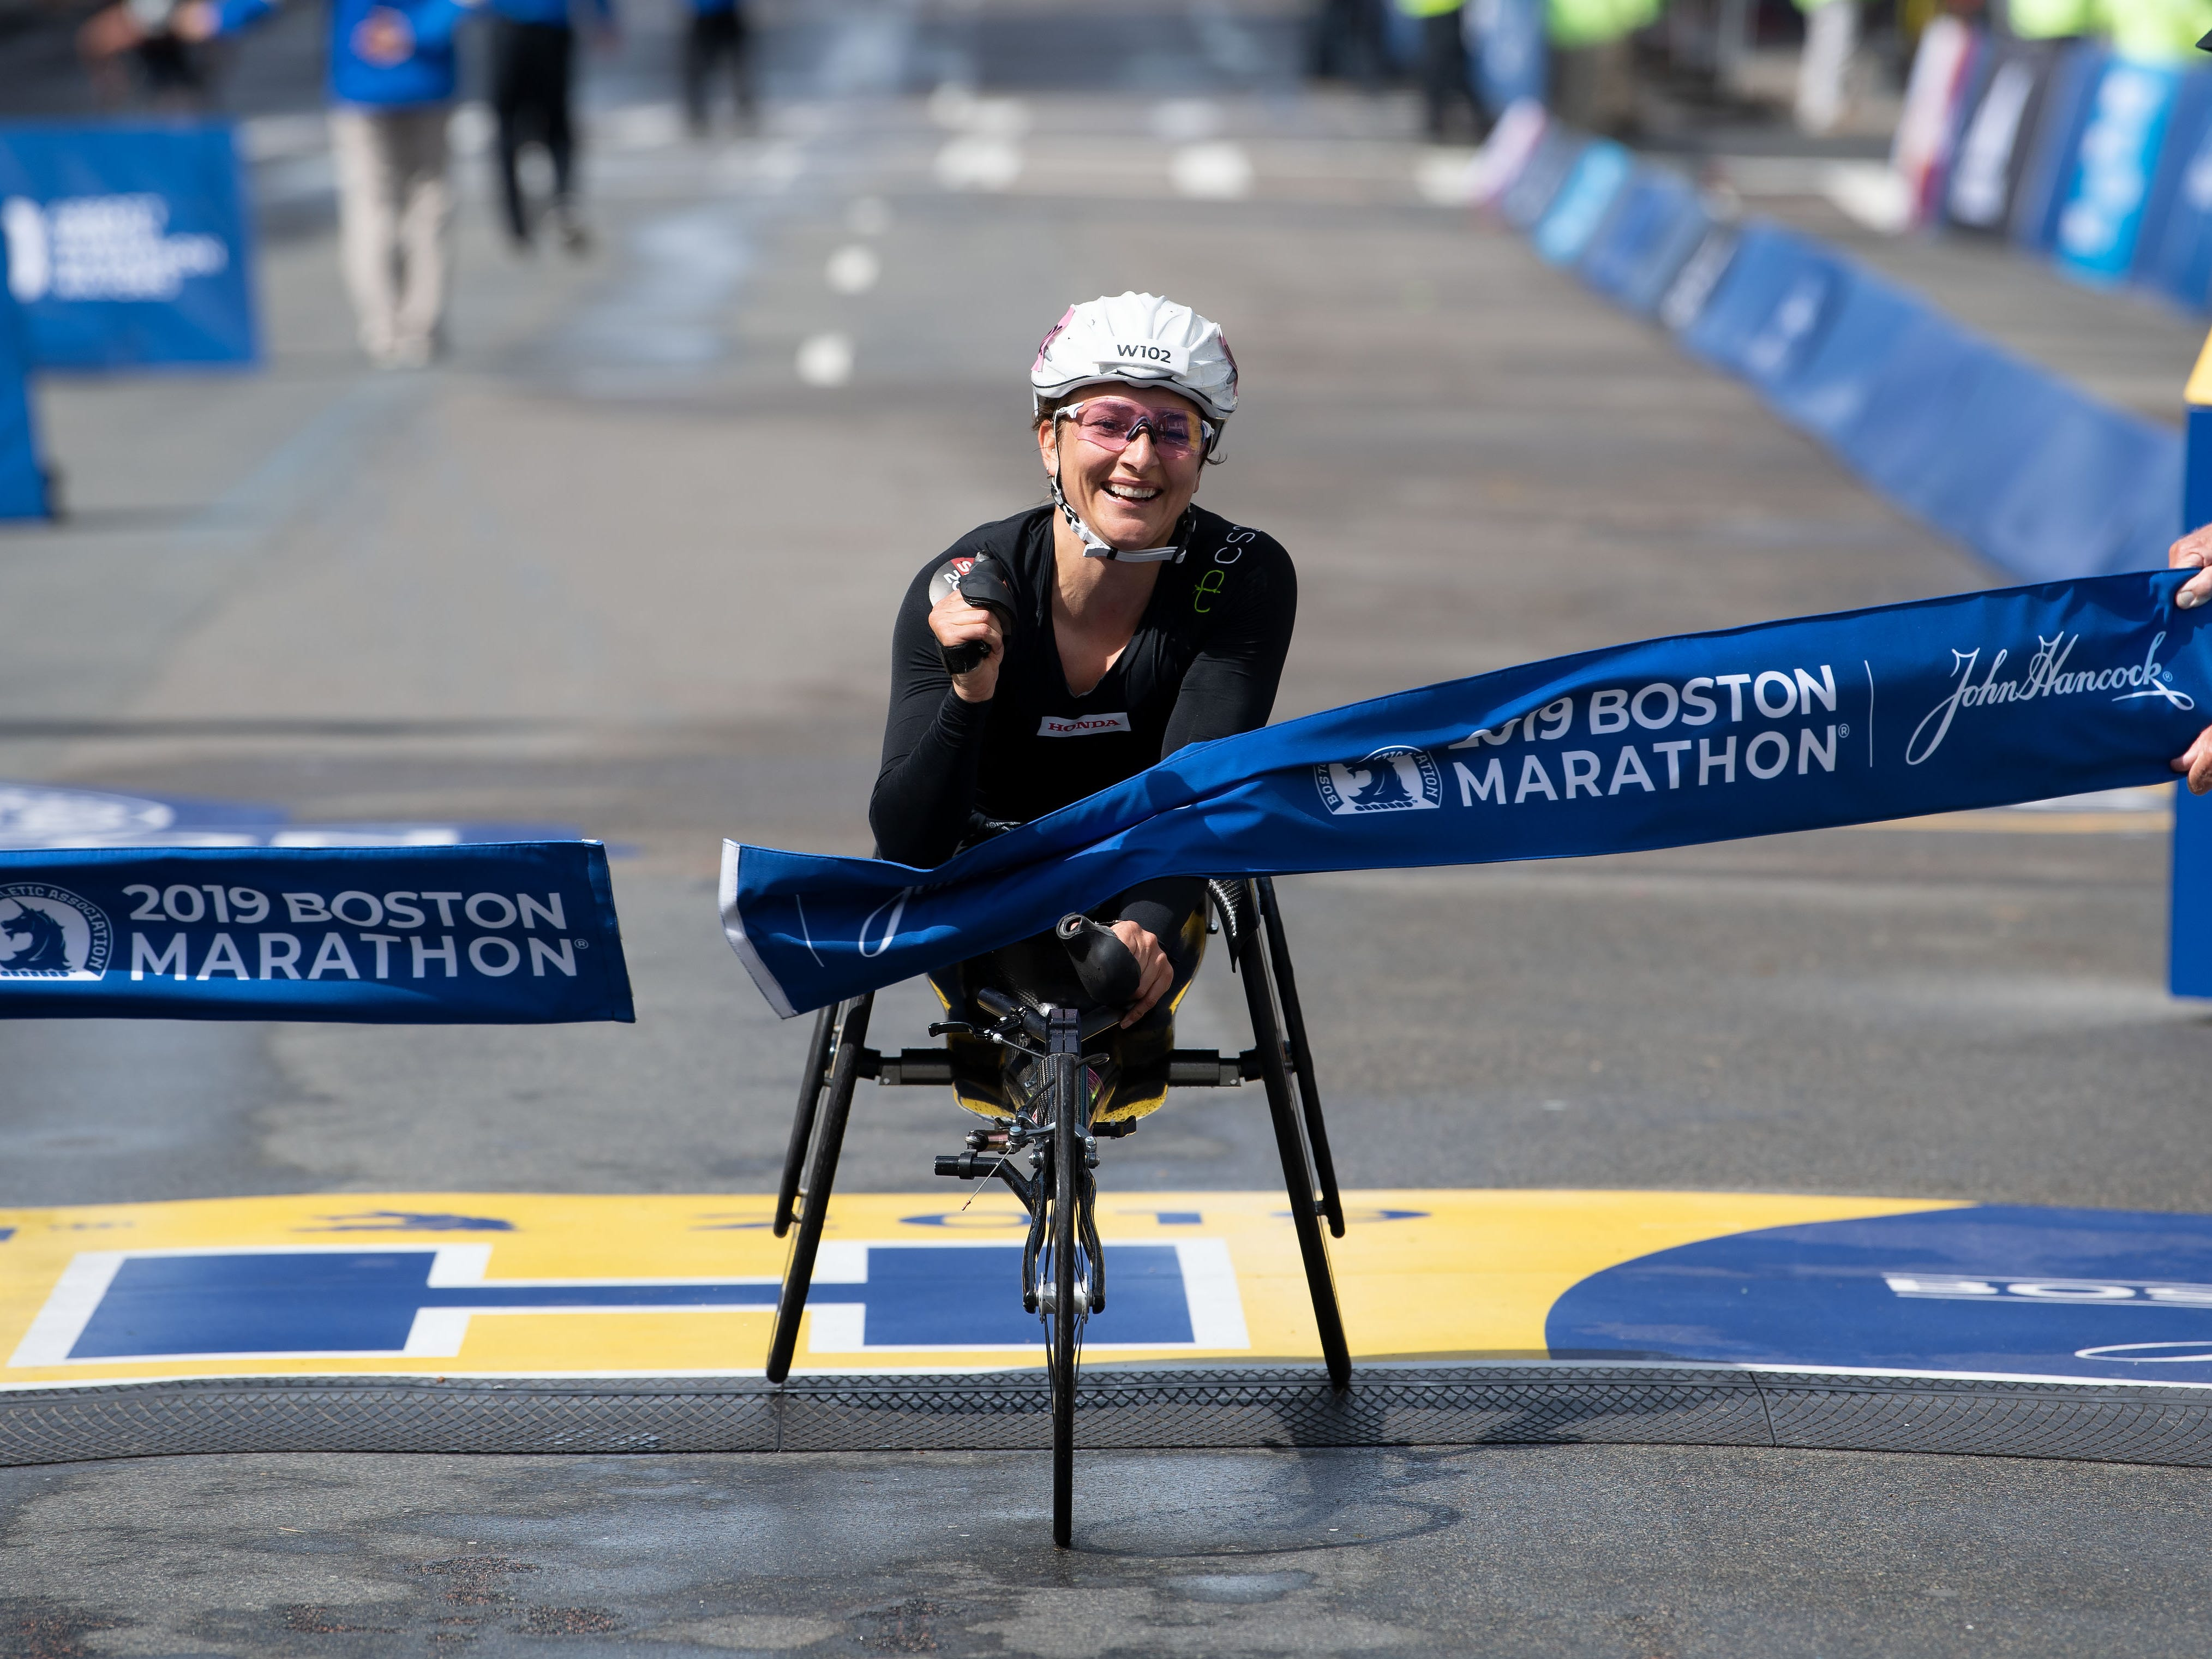 Manuela Schar of Switzerland crosses the finish line to win the women's wheelchair division in the 2019 Boston Marathon.